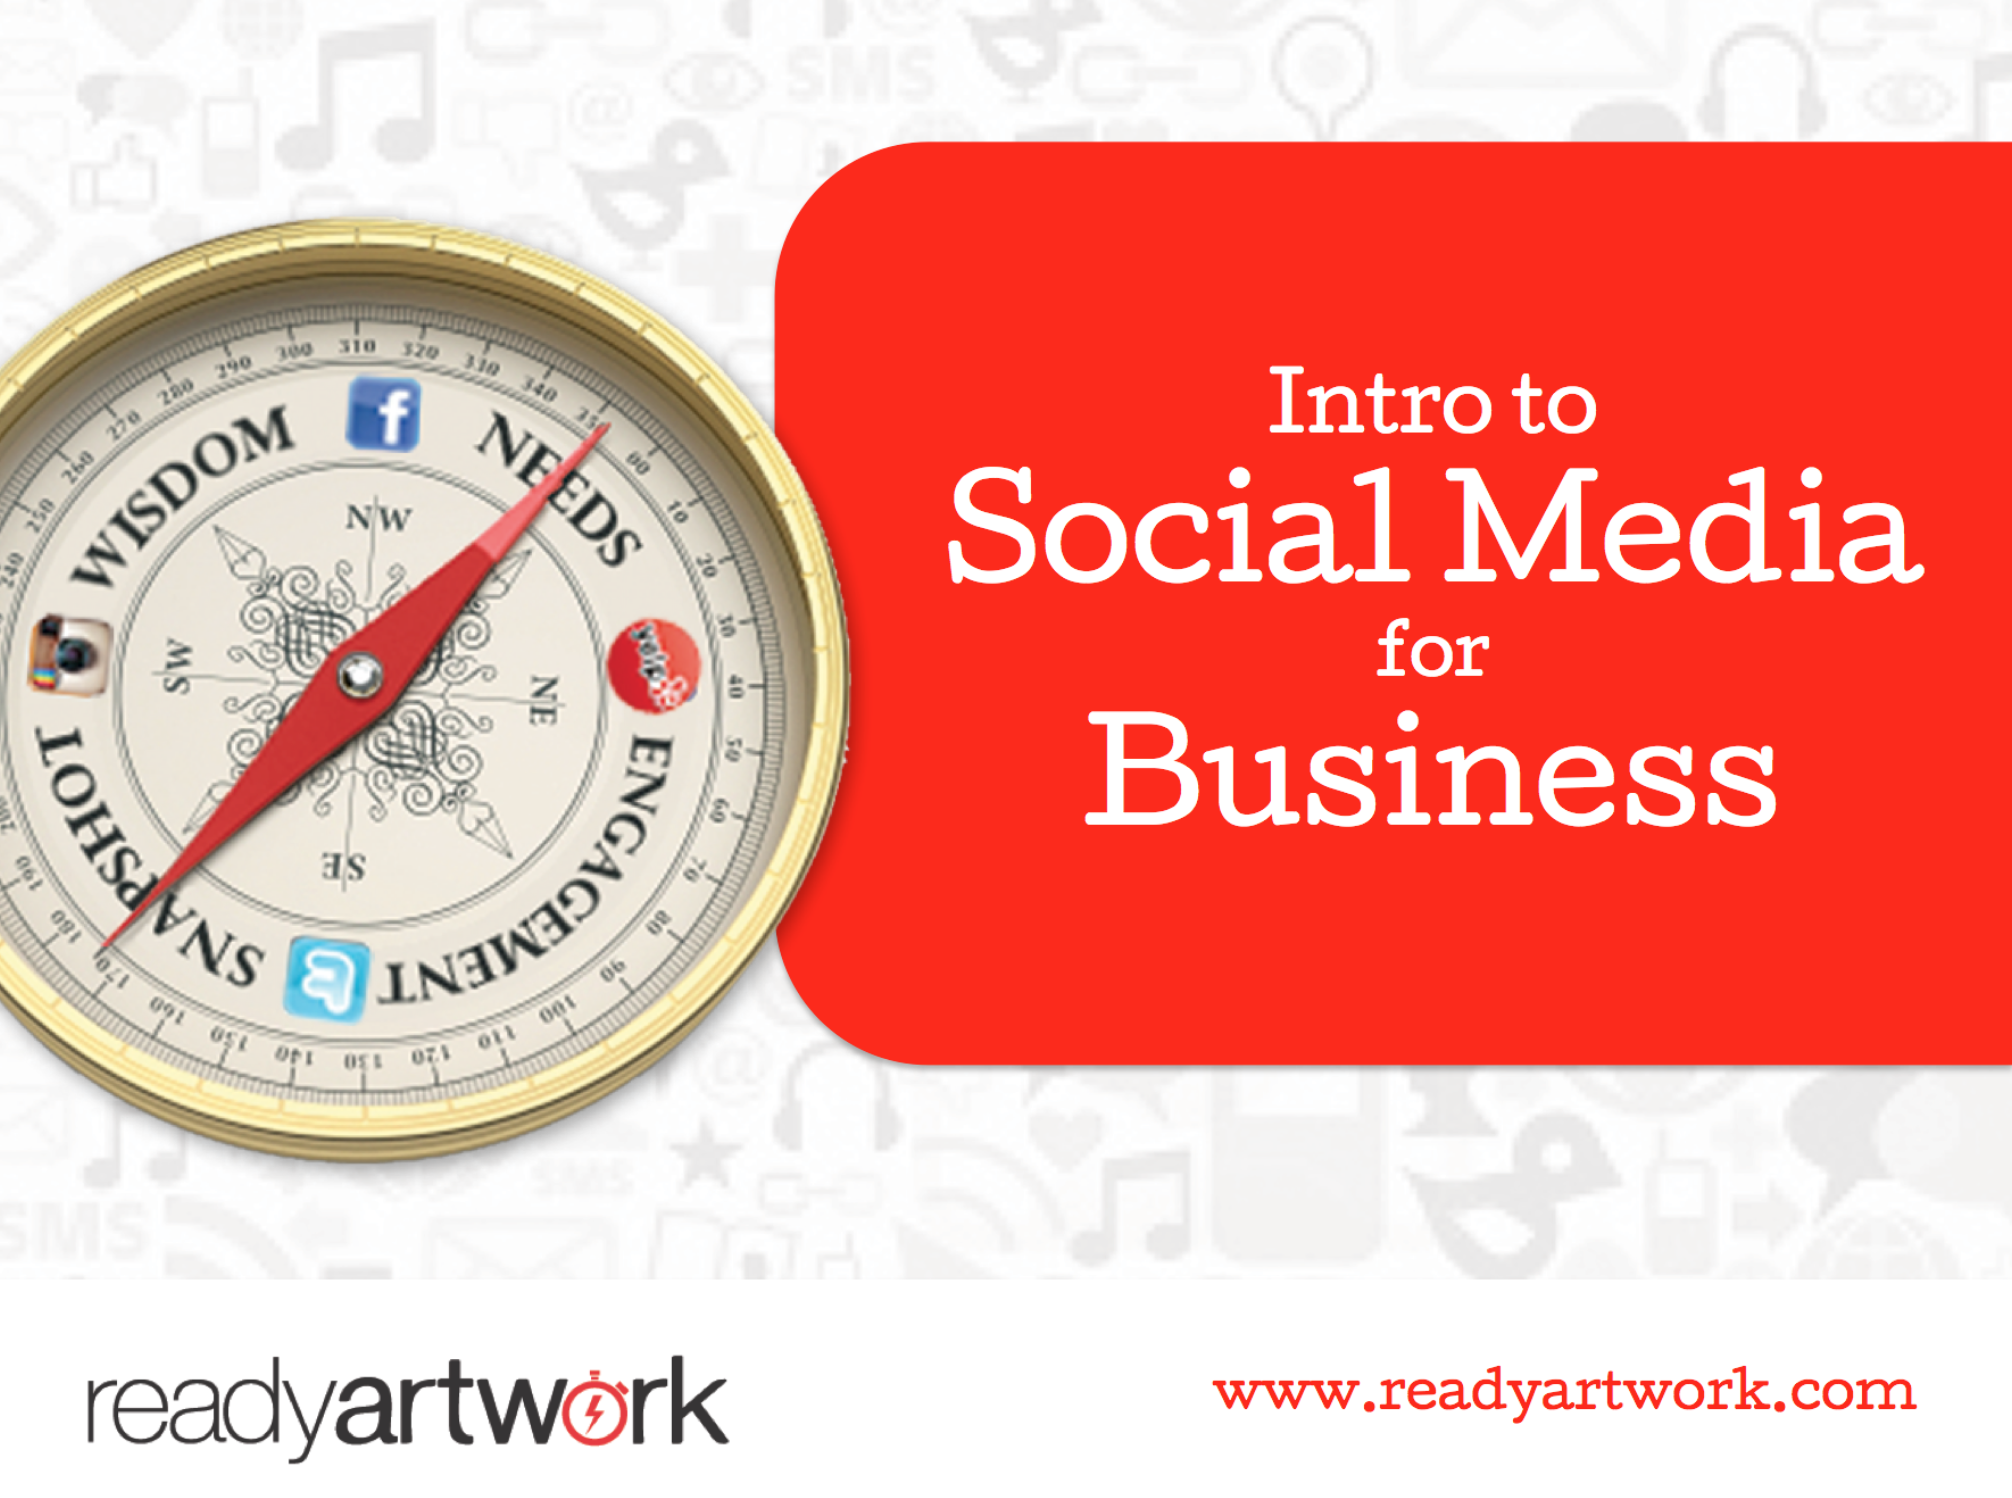 Download: Intro to Social Media for Business Owners Presentation